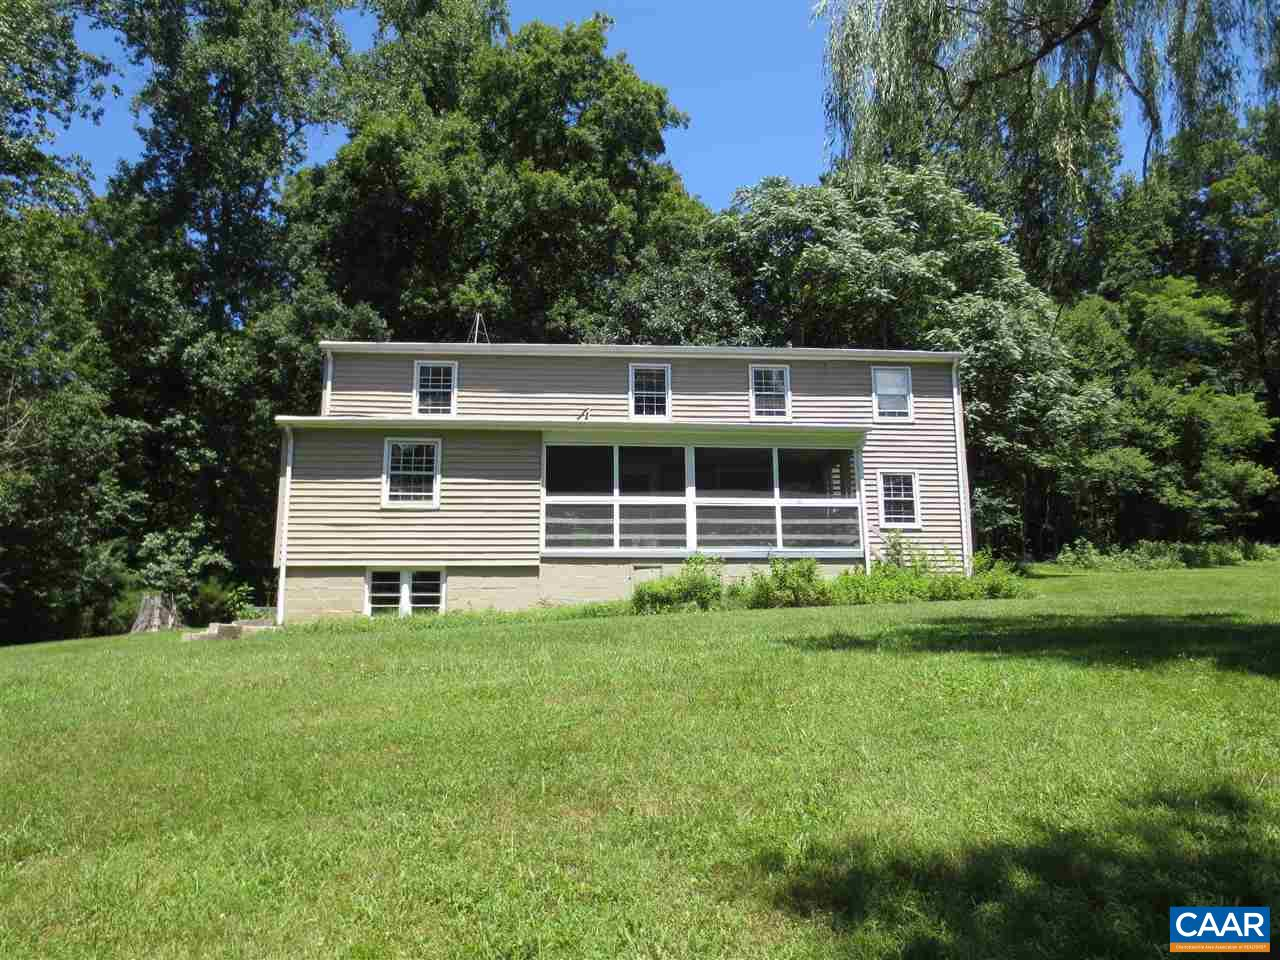 home for sale , MLS #537296, 2242 Hansens Mountain Rd